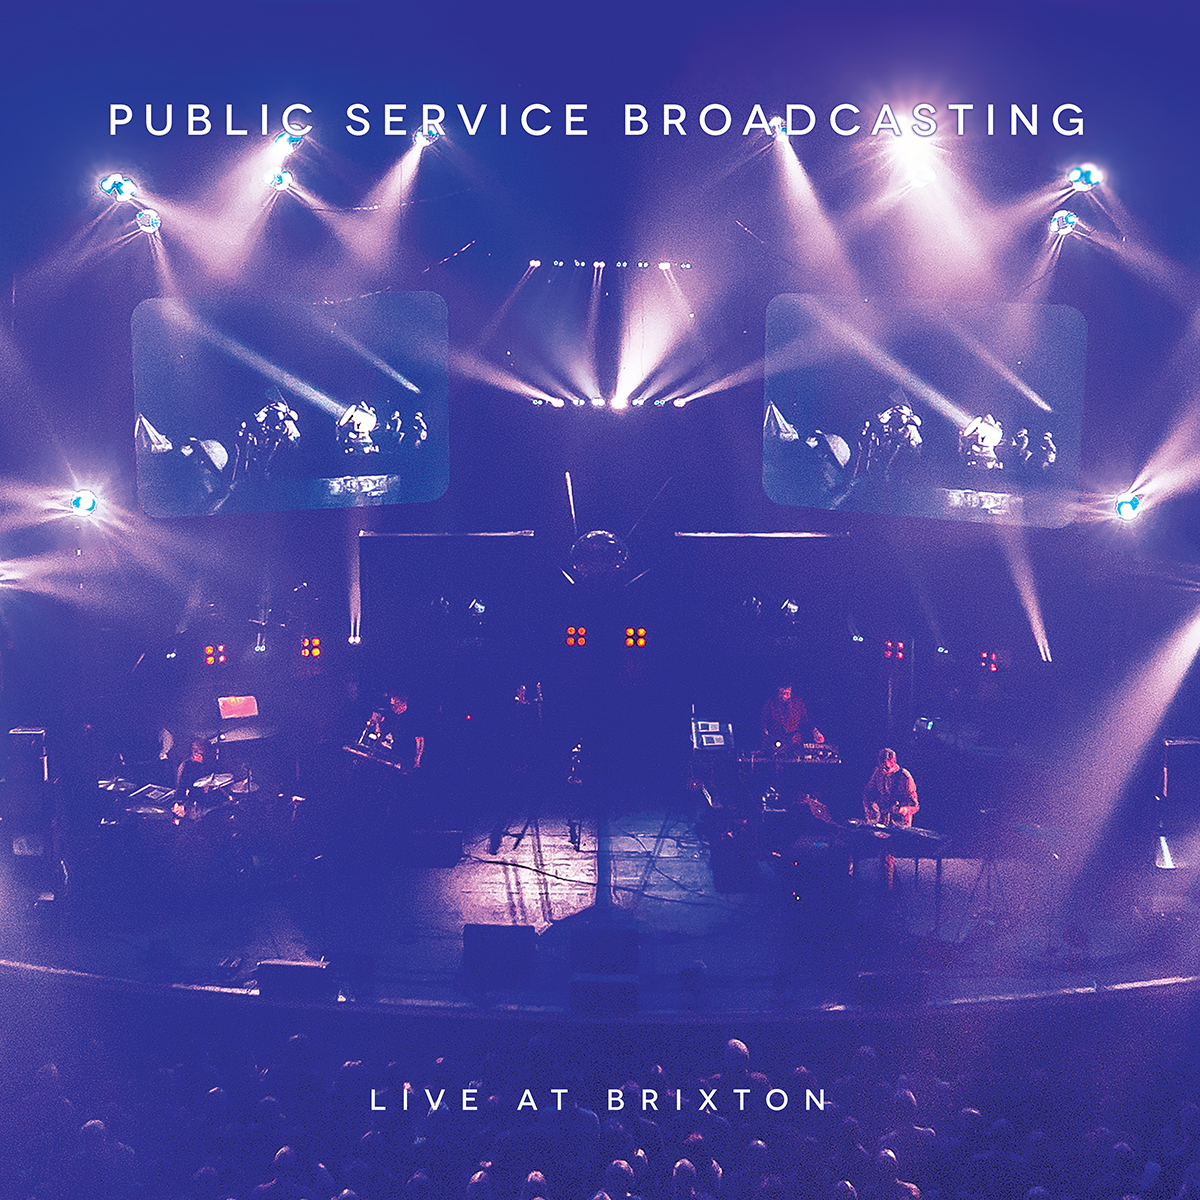 PSB Live At Brixton [Double CD + DVD]